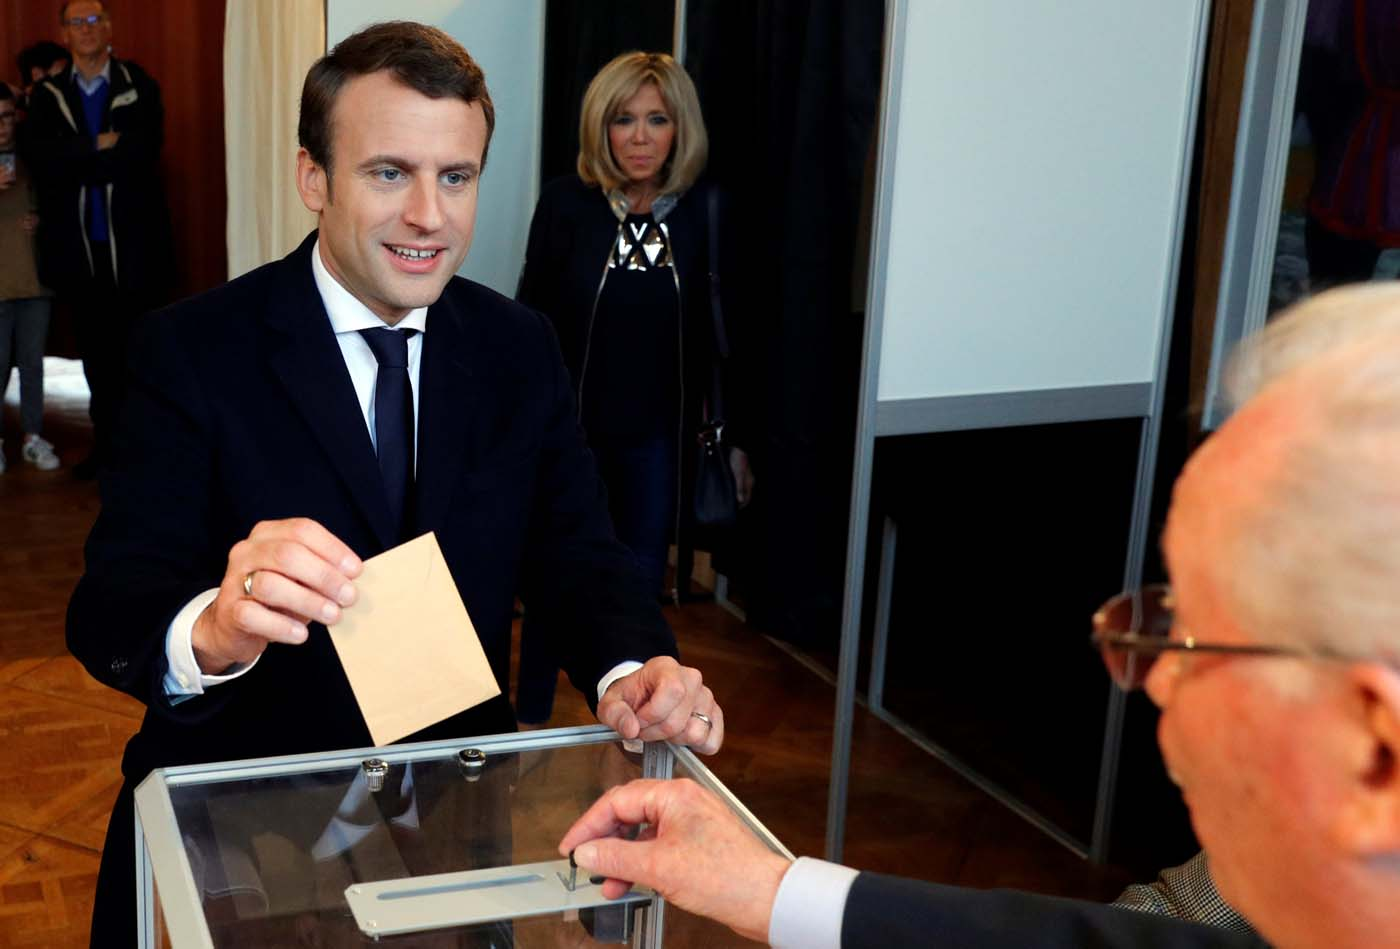 French presidential election candidate Emmanuel Macron, head of the political movement En Marche !, or Onwards ! casts his ballot at a polling station during the the second round of 2017 French presidential election, in Le Touquet, France, May 7, 2017. REUTERS/Philippe Wojazer